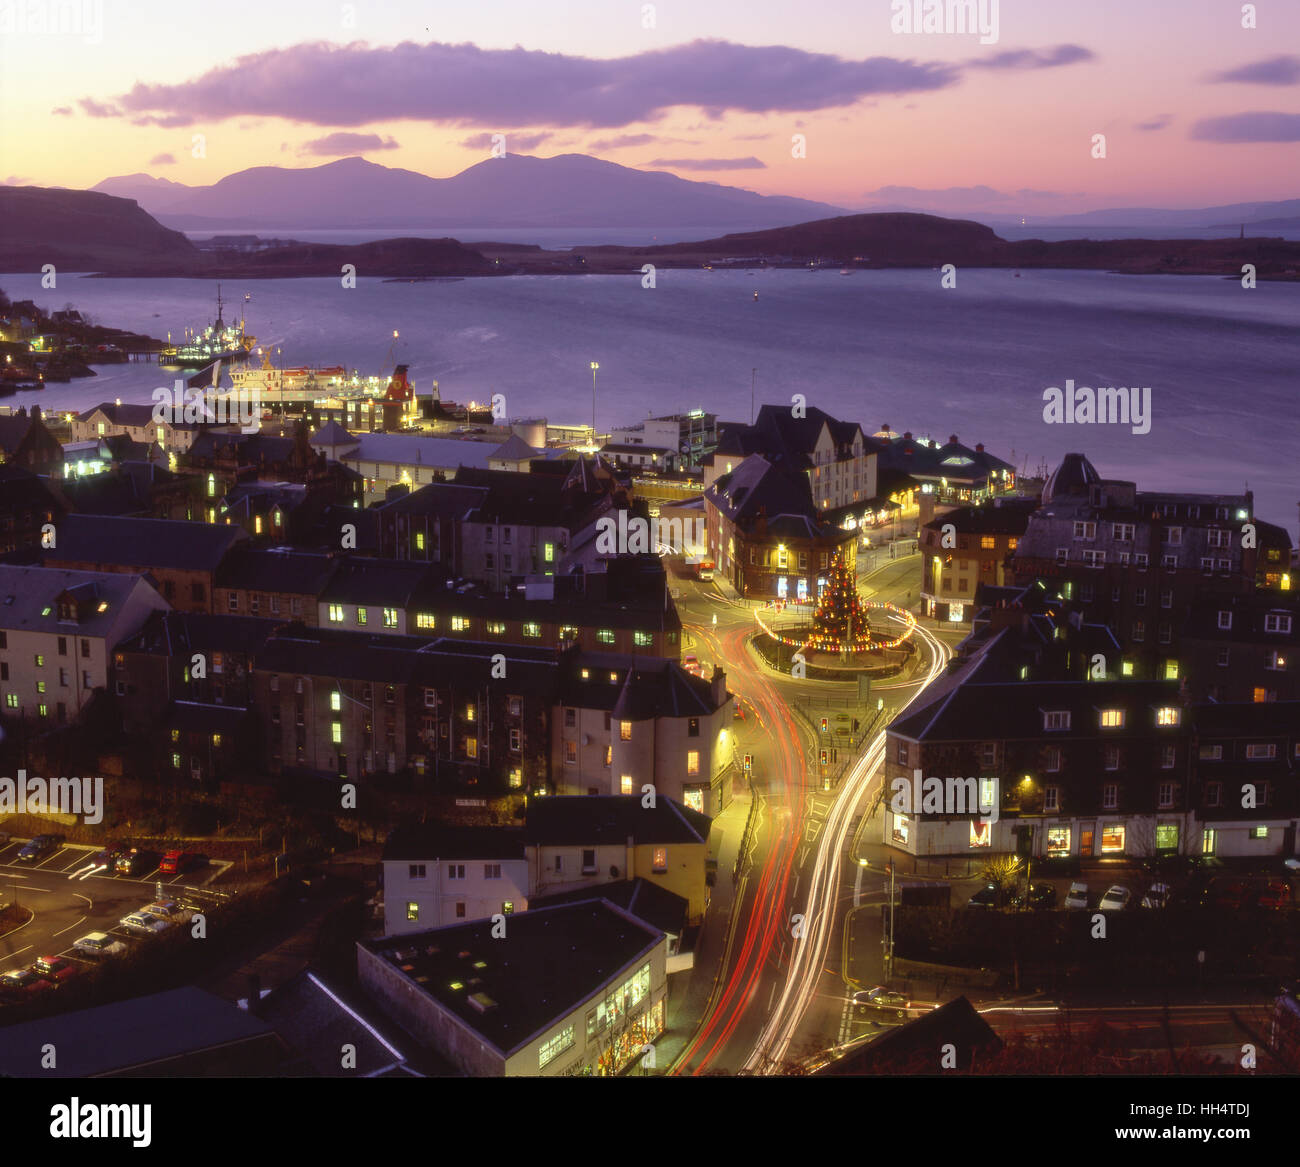 Oban at Christmas with the Island of Mull in the distance, Argyll - Stock Image